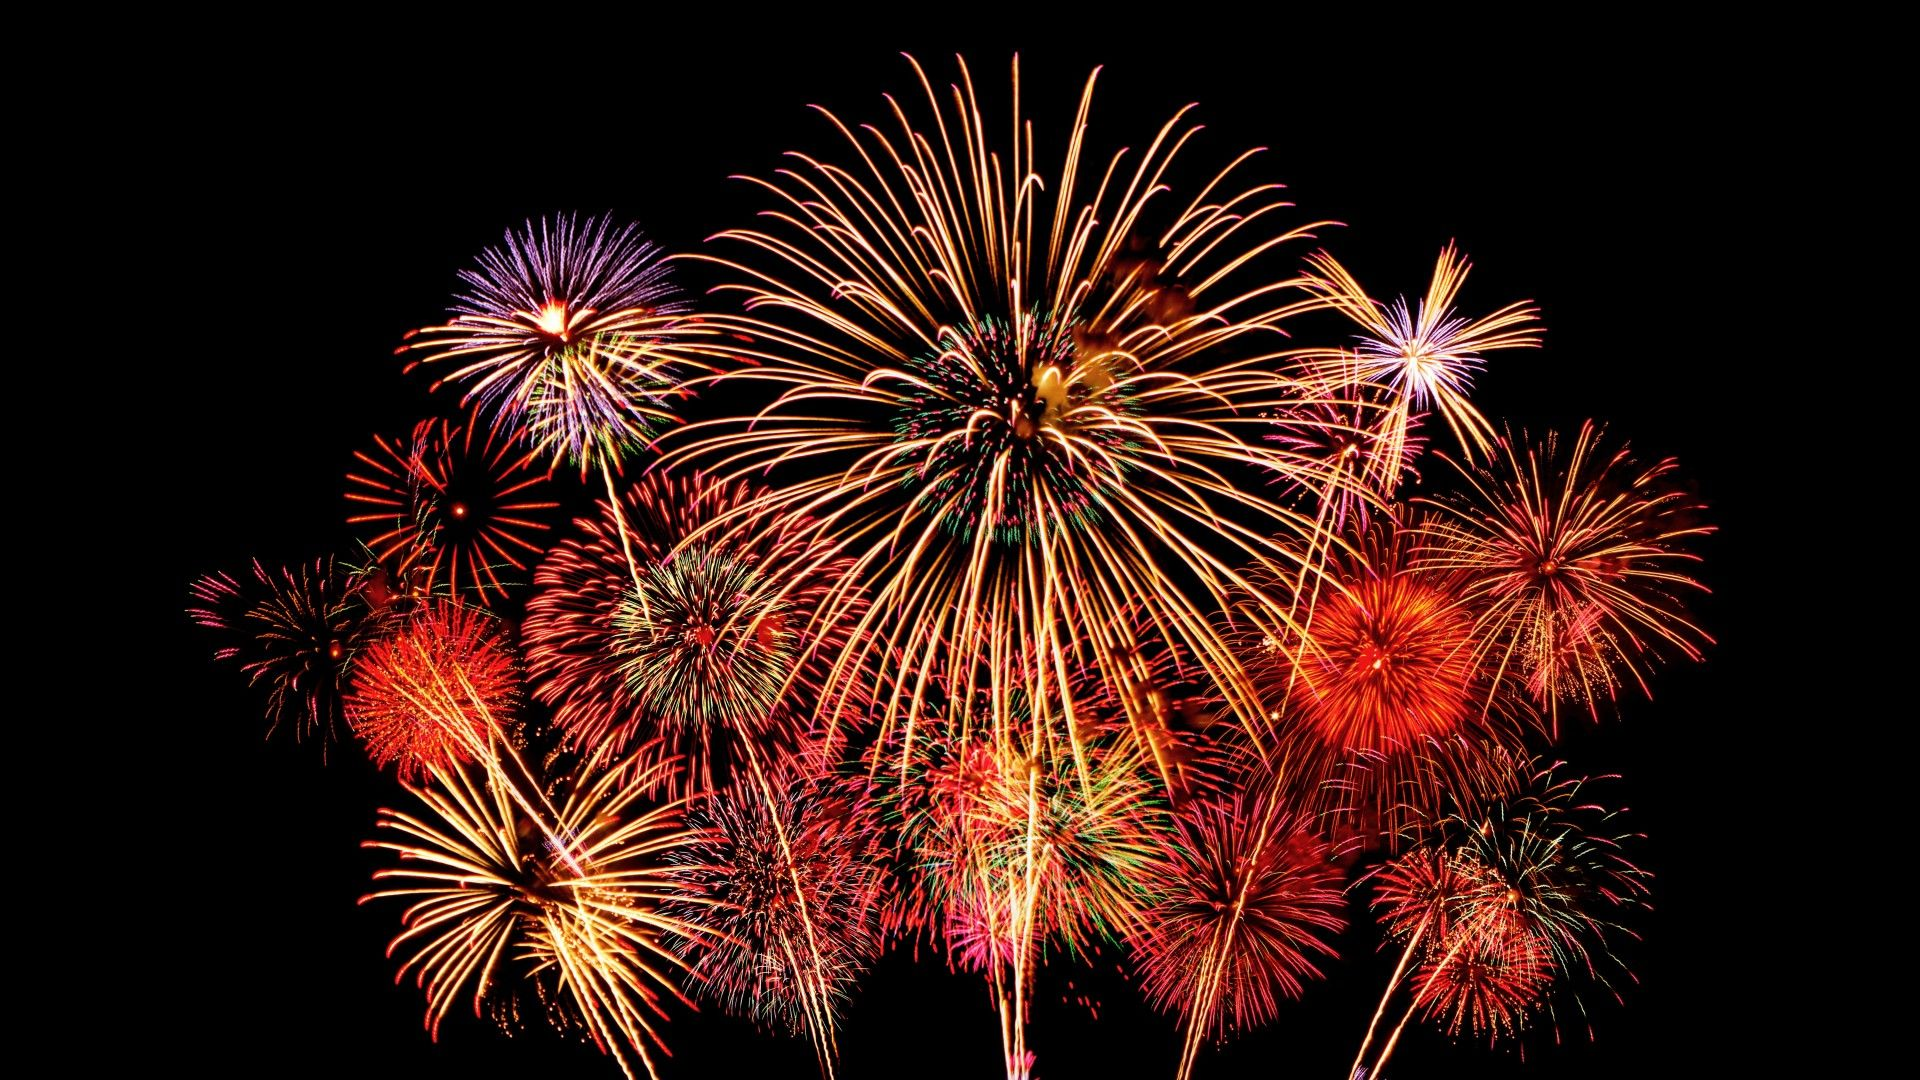 Pin By Aninash Ranjan On Words Hello Celebrate Fireworks Wallpaper Fireworks New Year Wallpaper